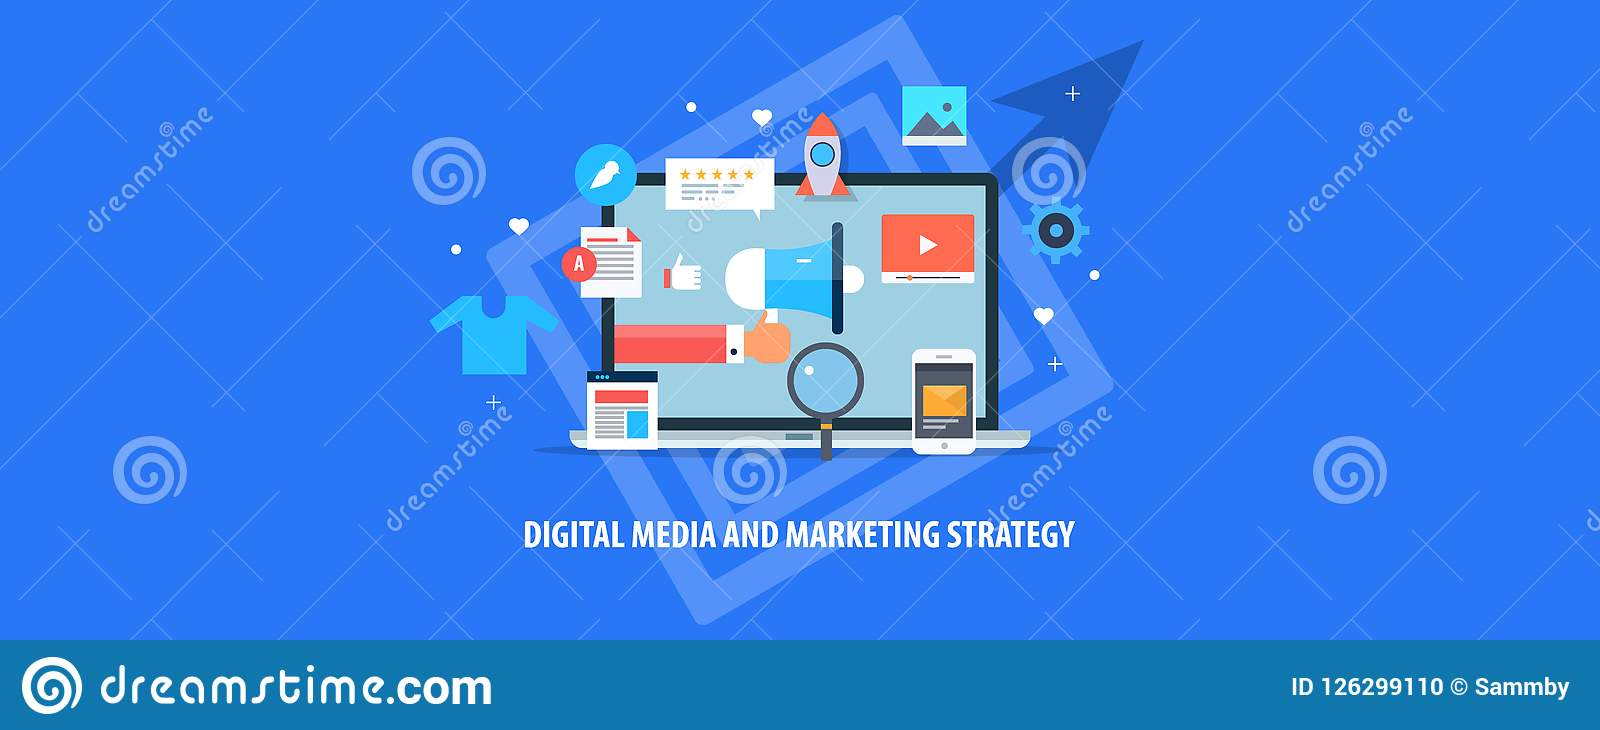 Digital Media, Internet Marketing, Content Promotion, Email, Mobile, Viral Video Content, Marketing Strategy Concept. Stock Vector - Illustration of rating, glass: 126299110